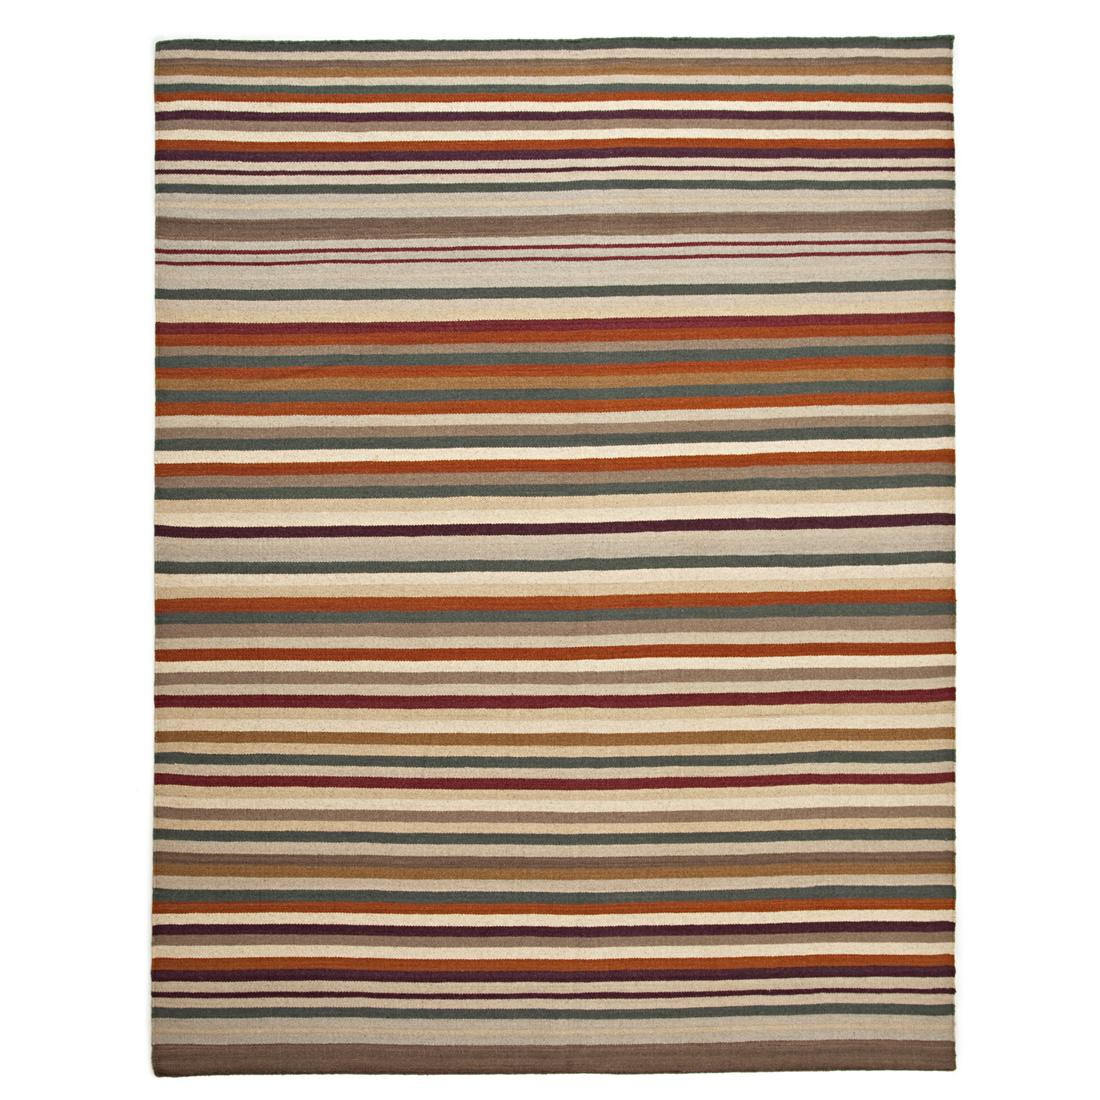 TAPETE KELIM STRIPE OVER SIZES - 4,00x6,00